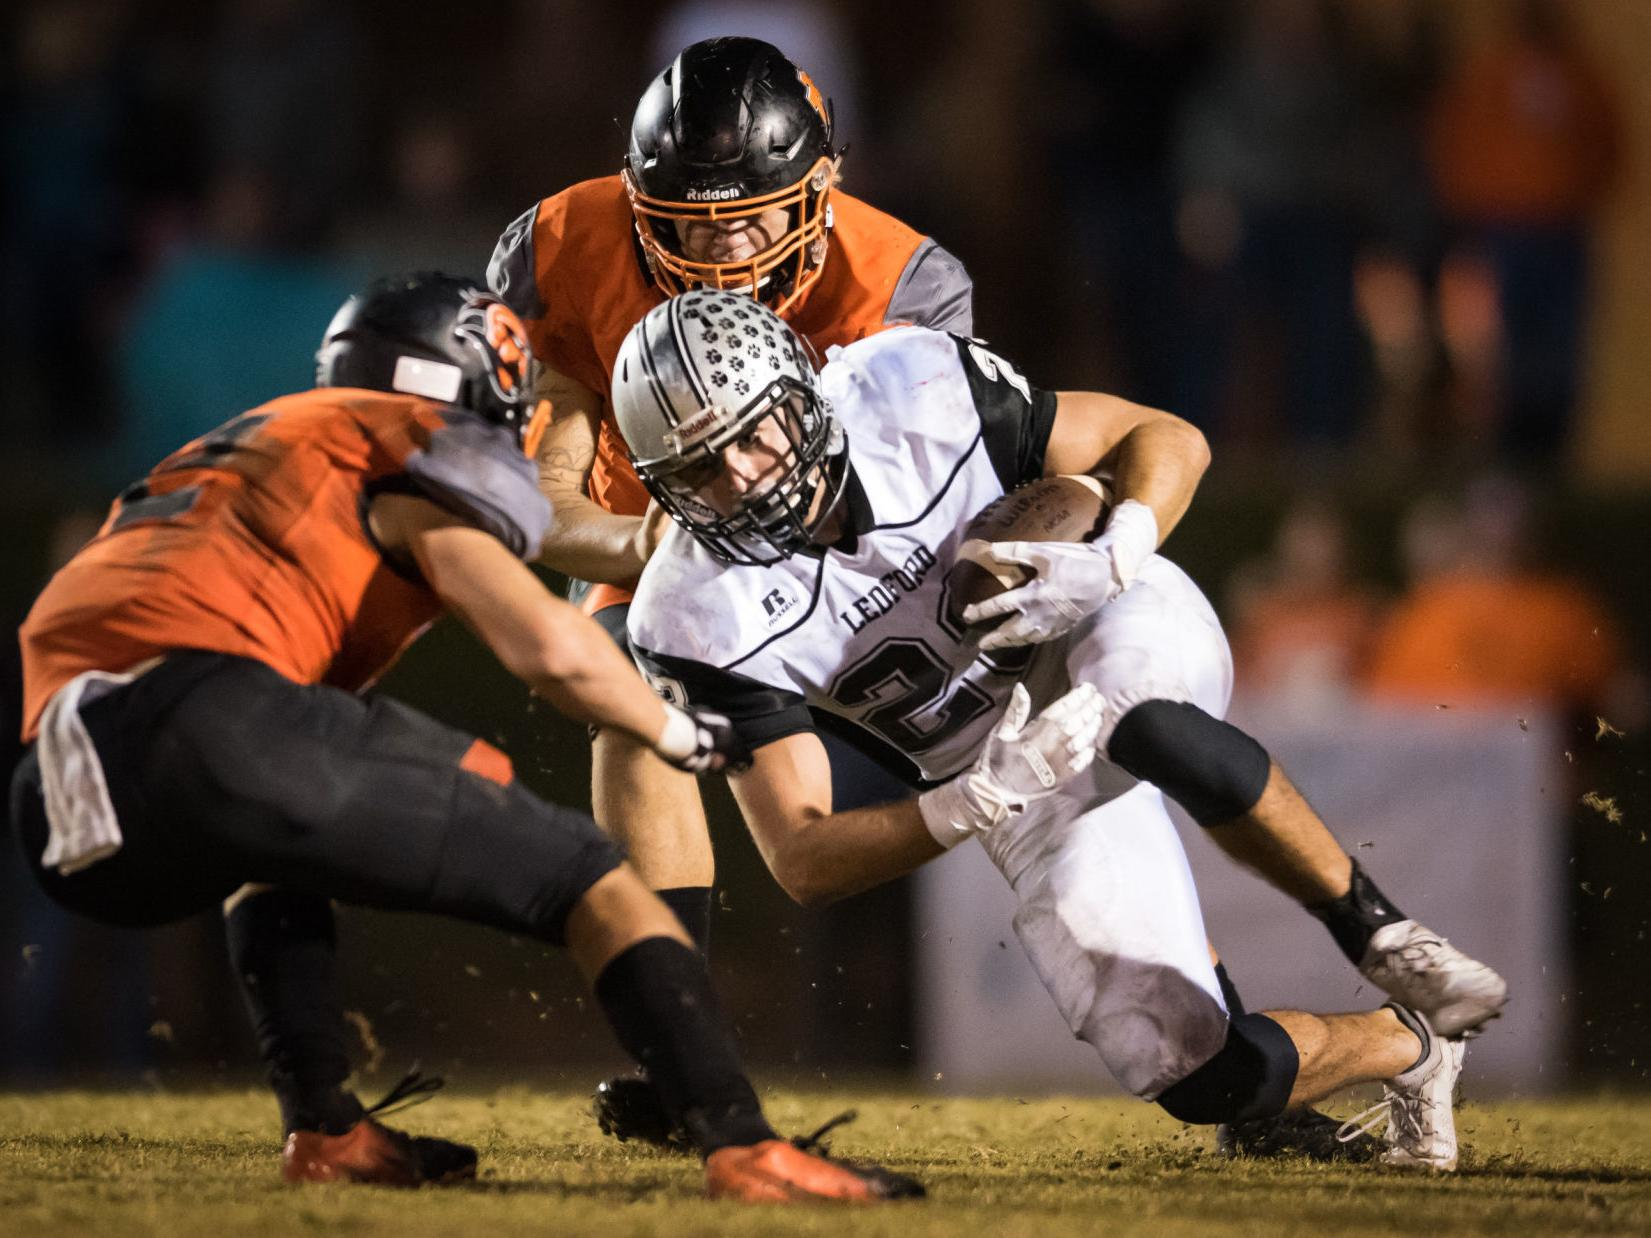 After parting ways with UNC, Ledford's Reich commits to Coastal Carolina